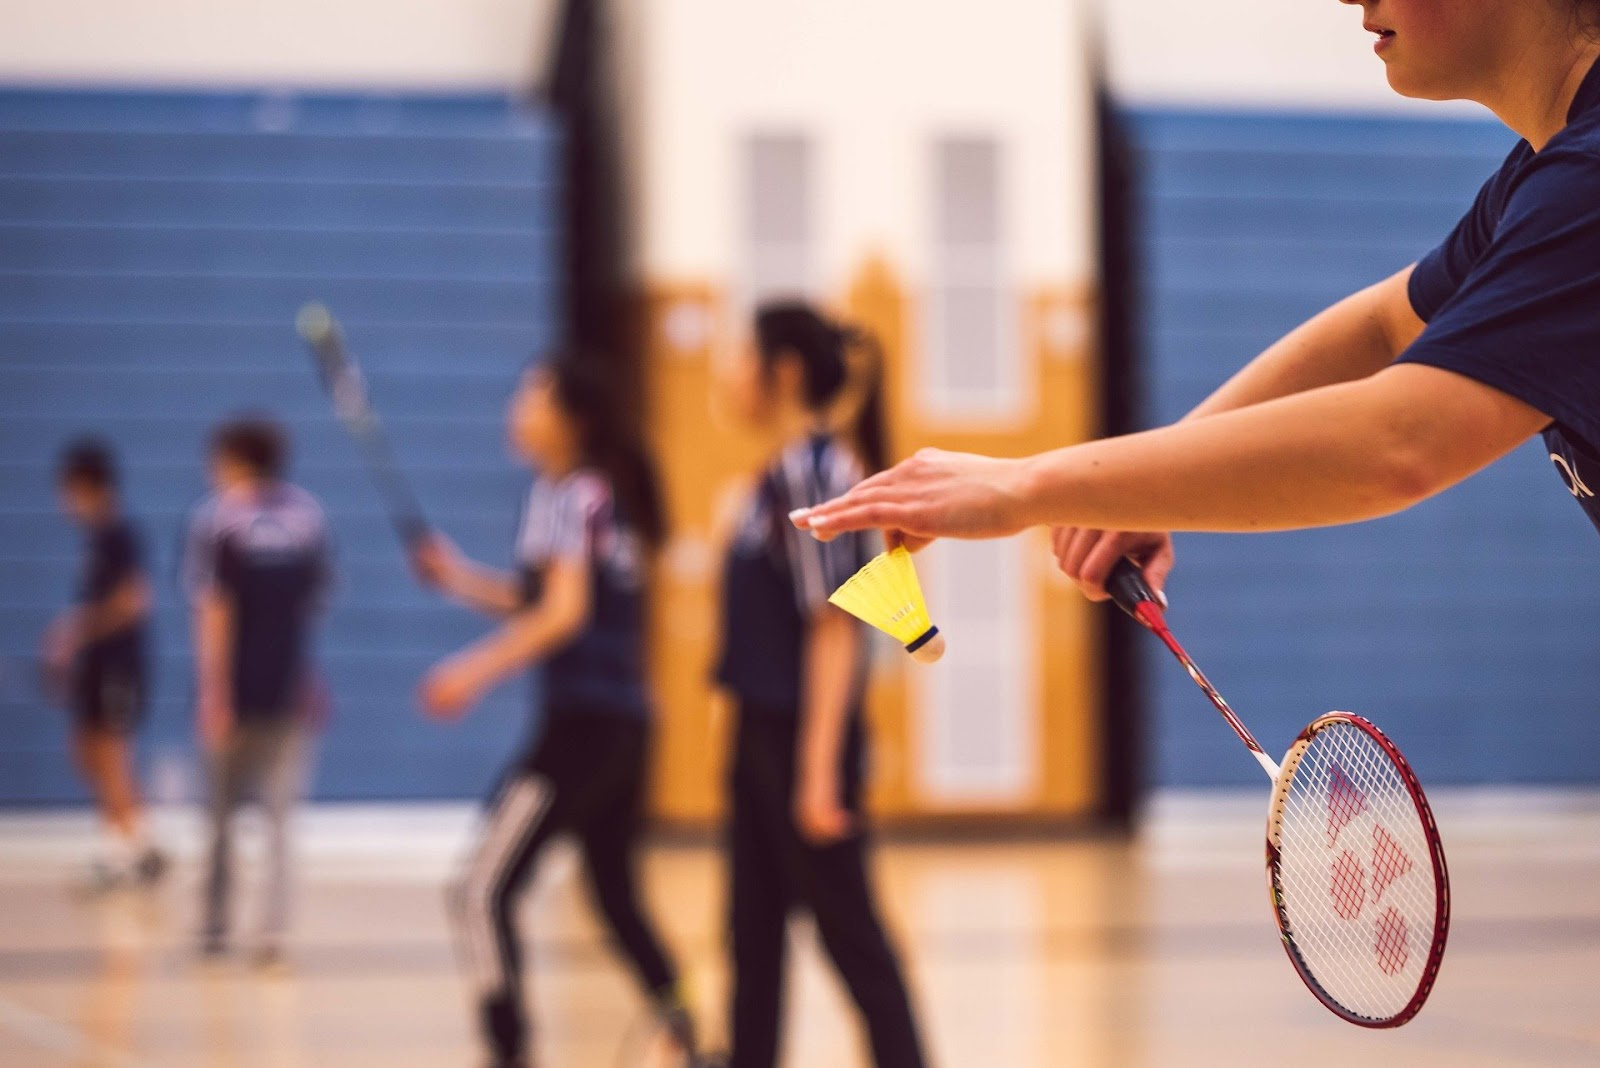 A badminton court has at least eight people on it.